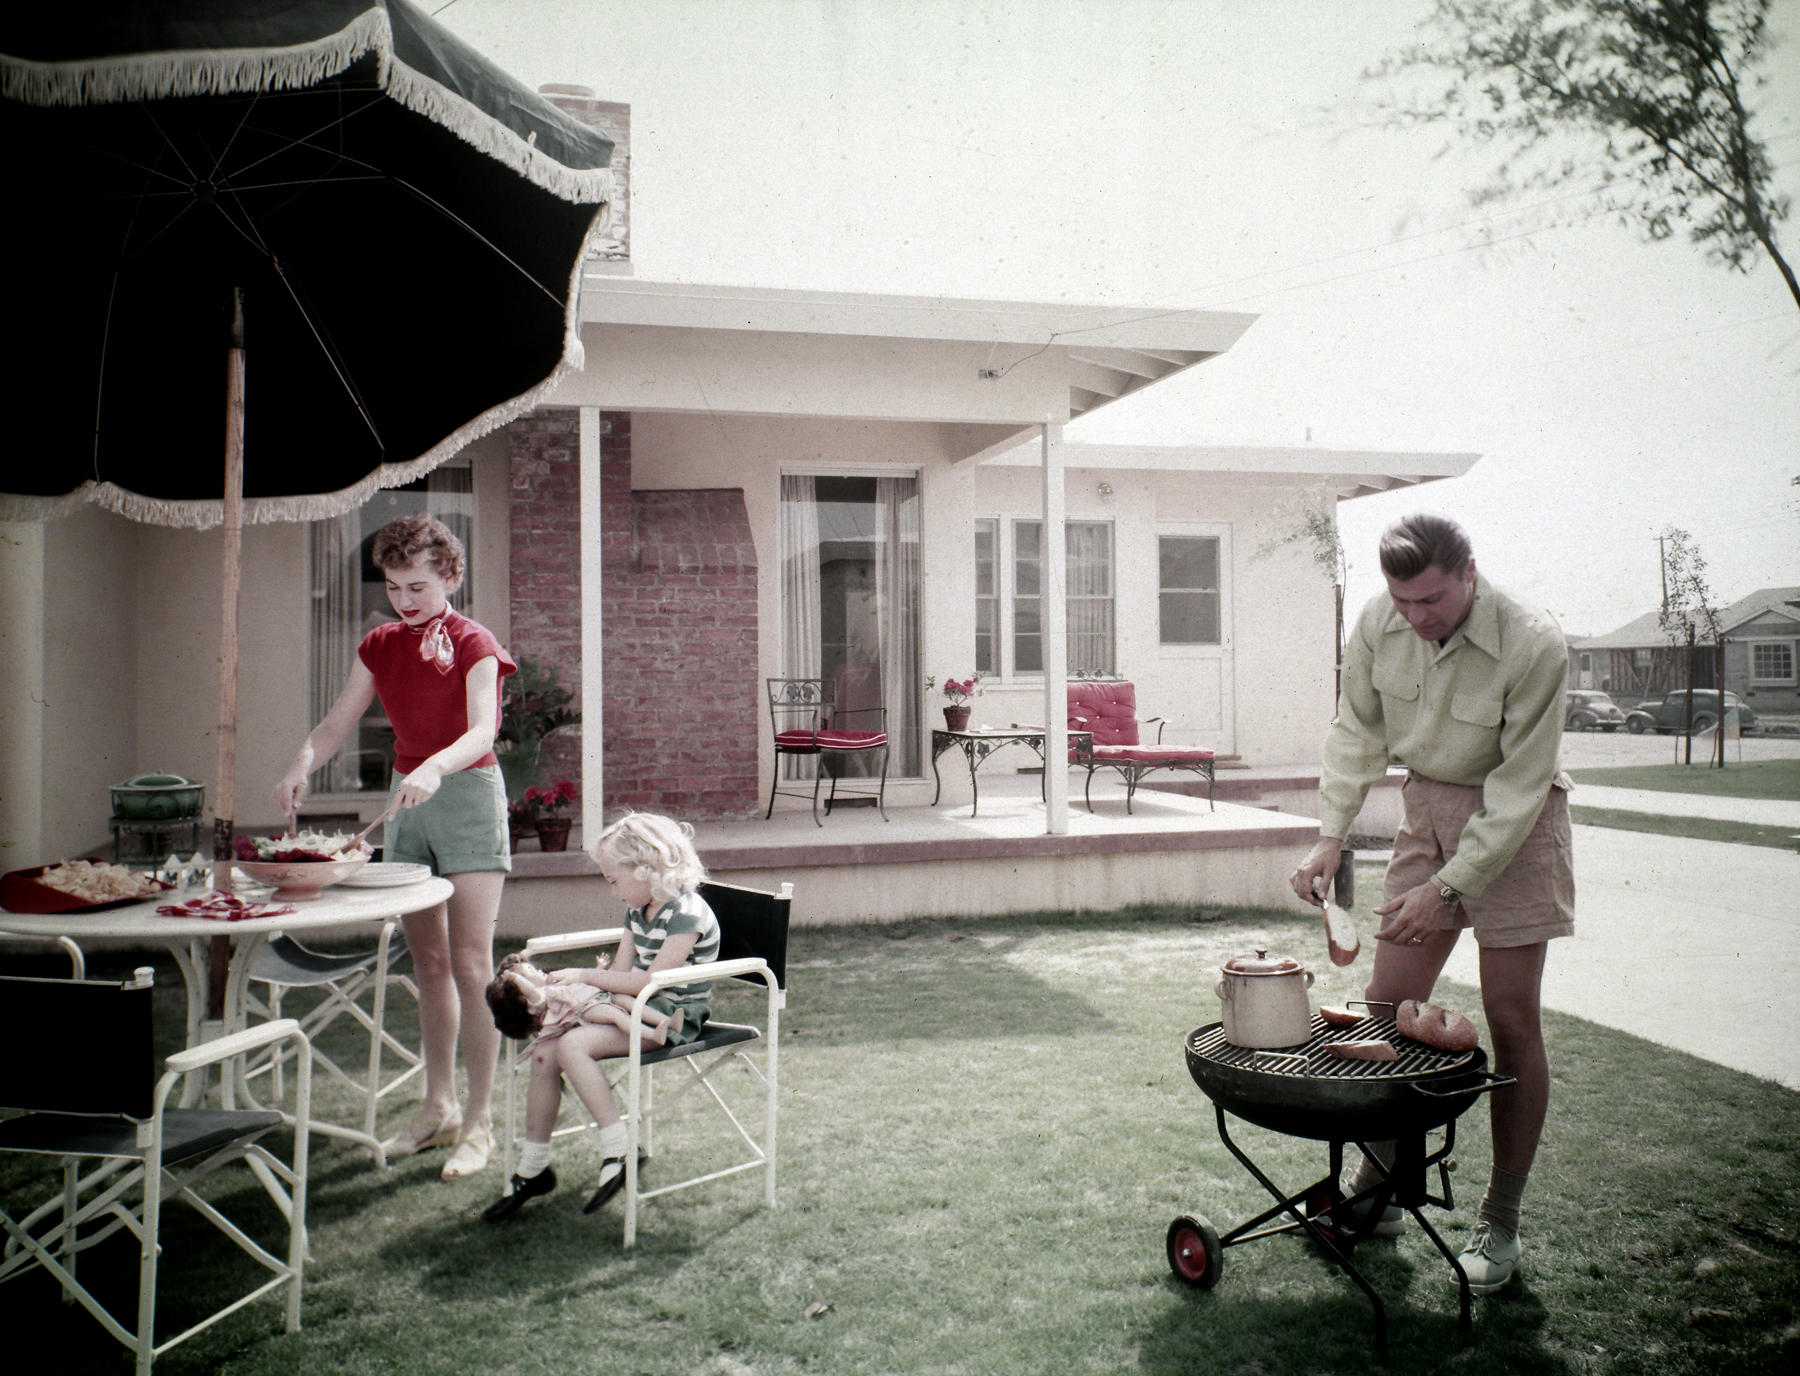 Lakewood Plaza, Outdoor Living Space. Long Beach, Calif., 1950s. Maynard L.  Parker, Photographer. Courtesy Of The Huntington Library, San Marino, Calif.